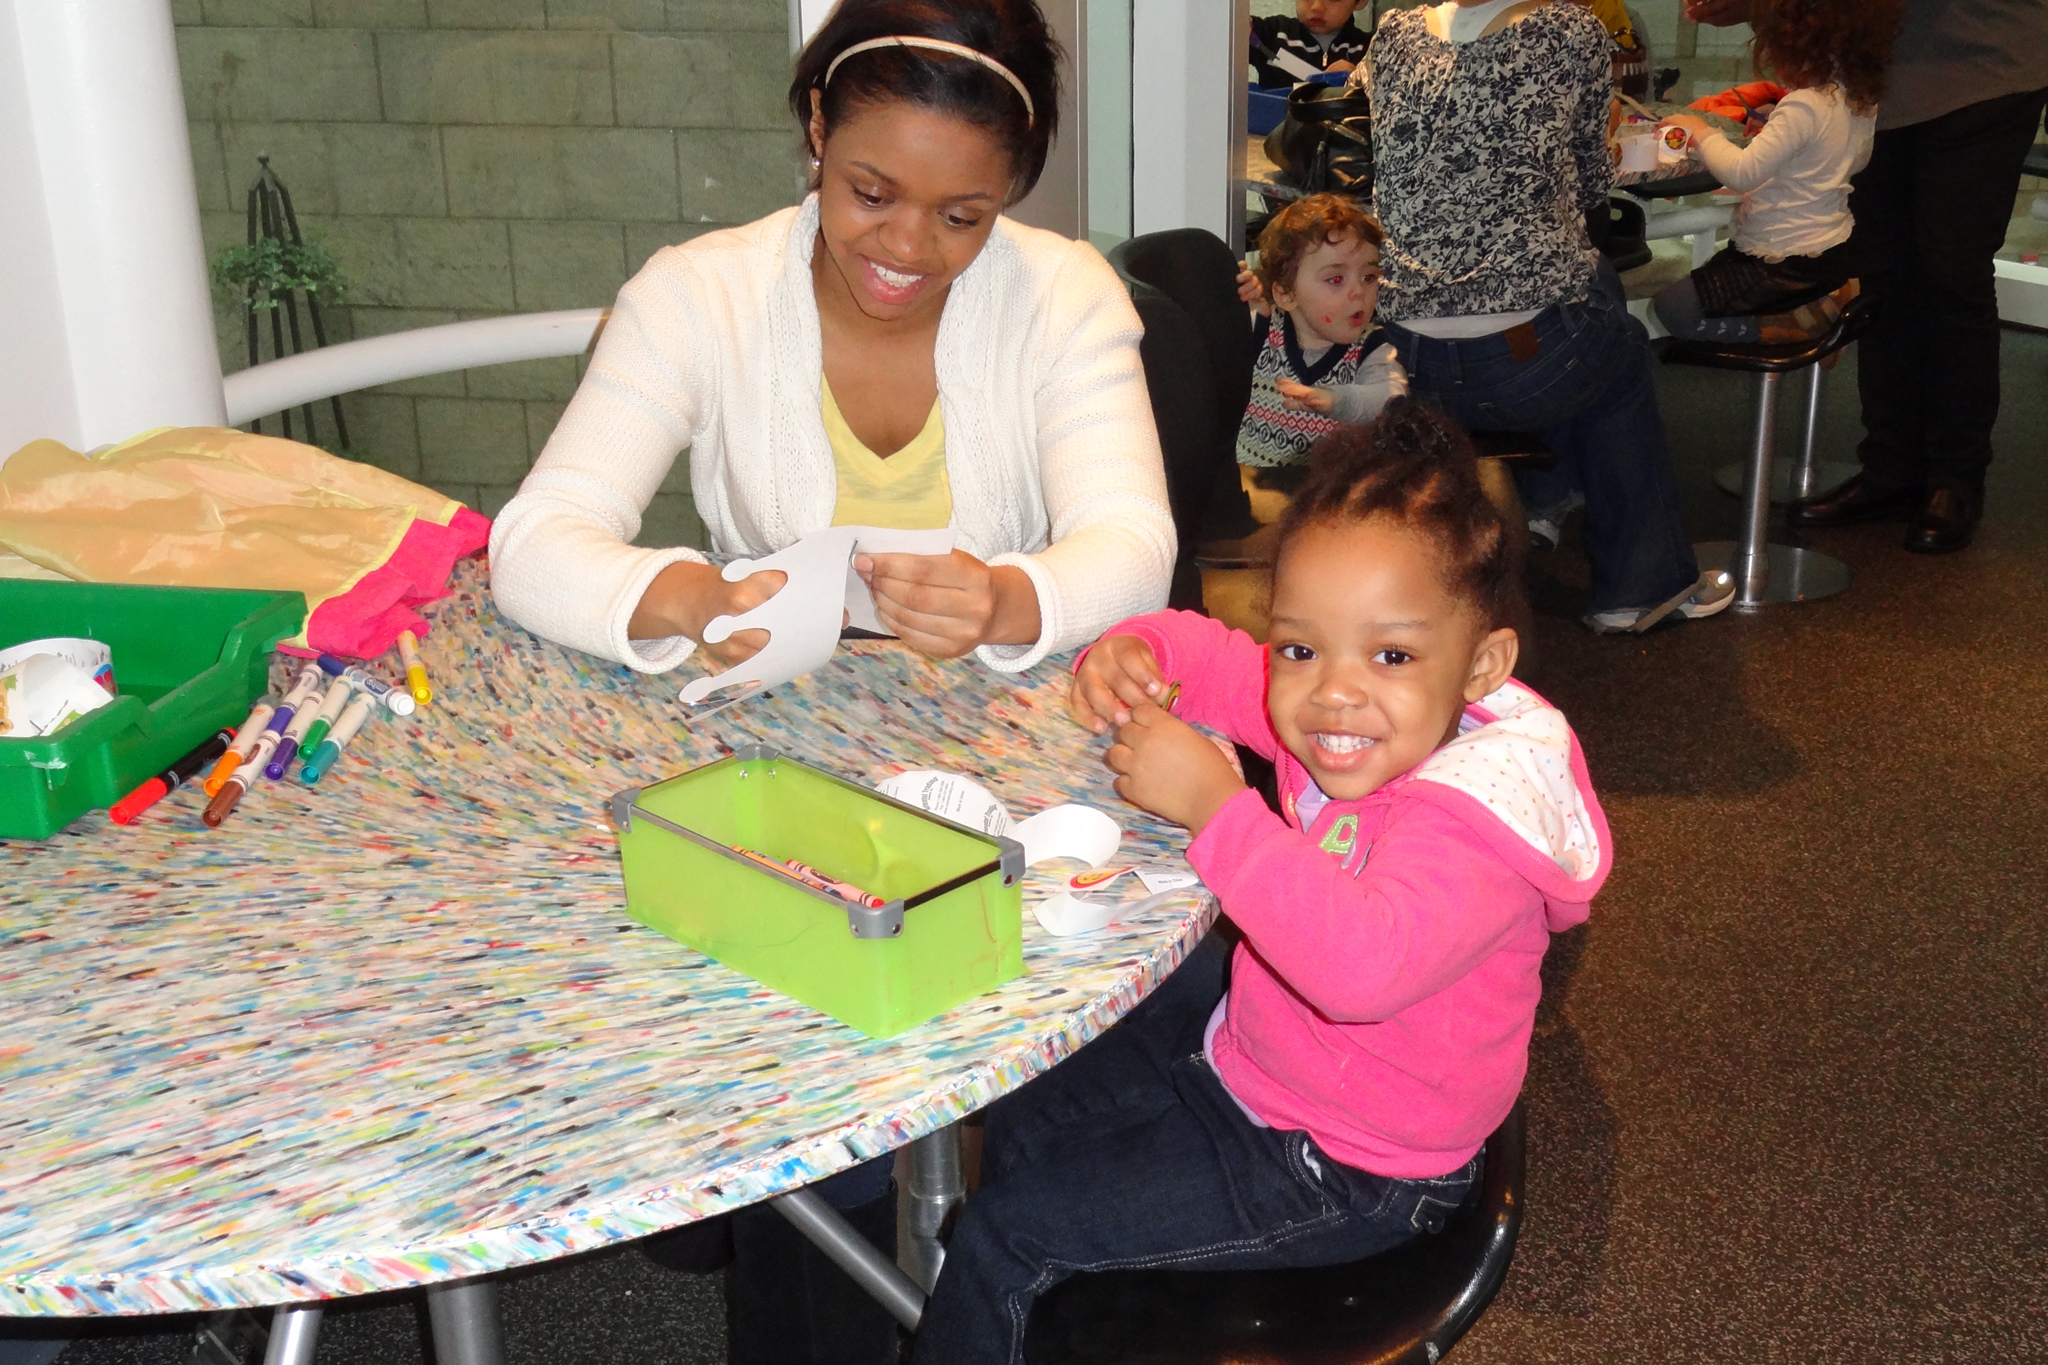 Mother's Day events for New York City families (2012)